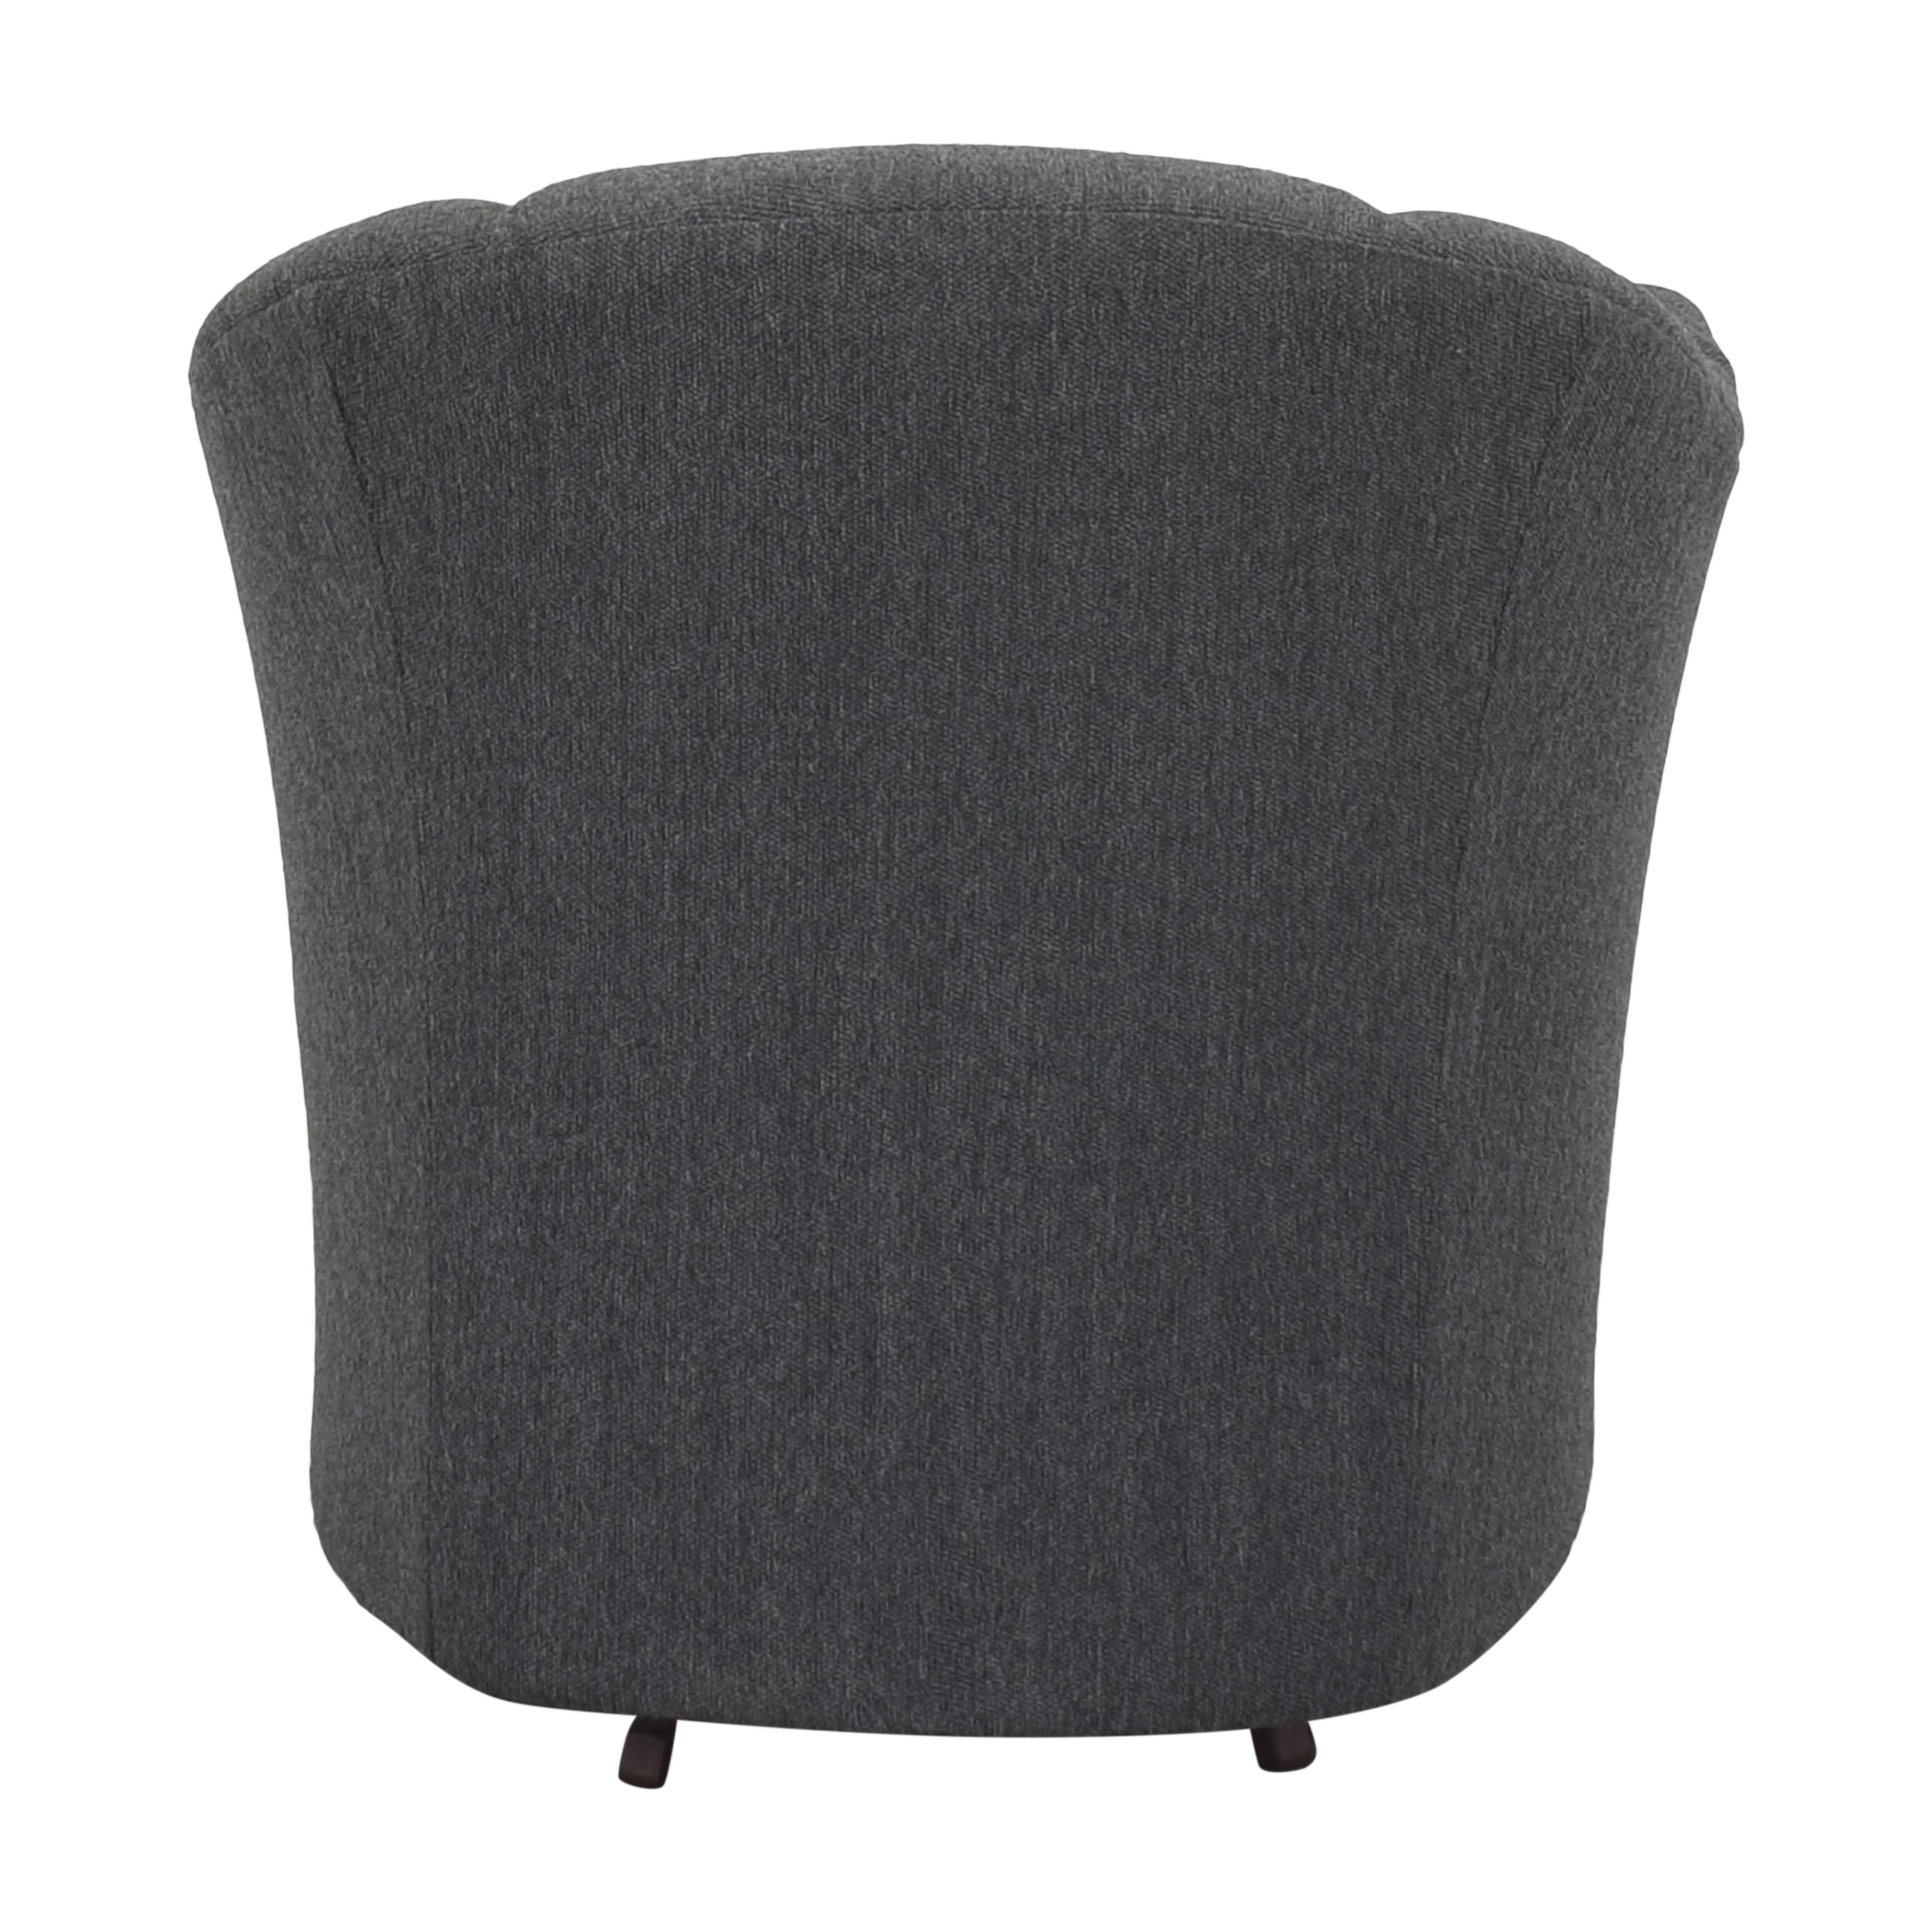 shop Maurice Villency Scalloped Swivel Chair  Maurice Villency Accent Chairs